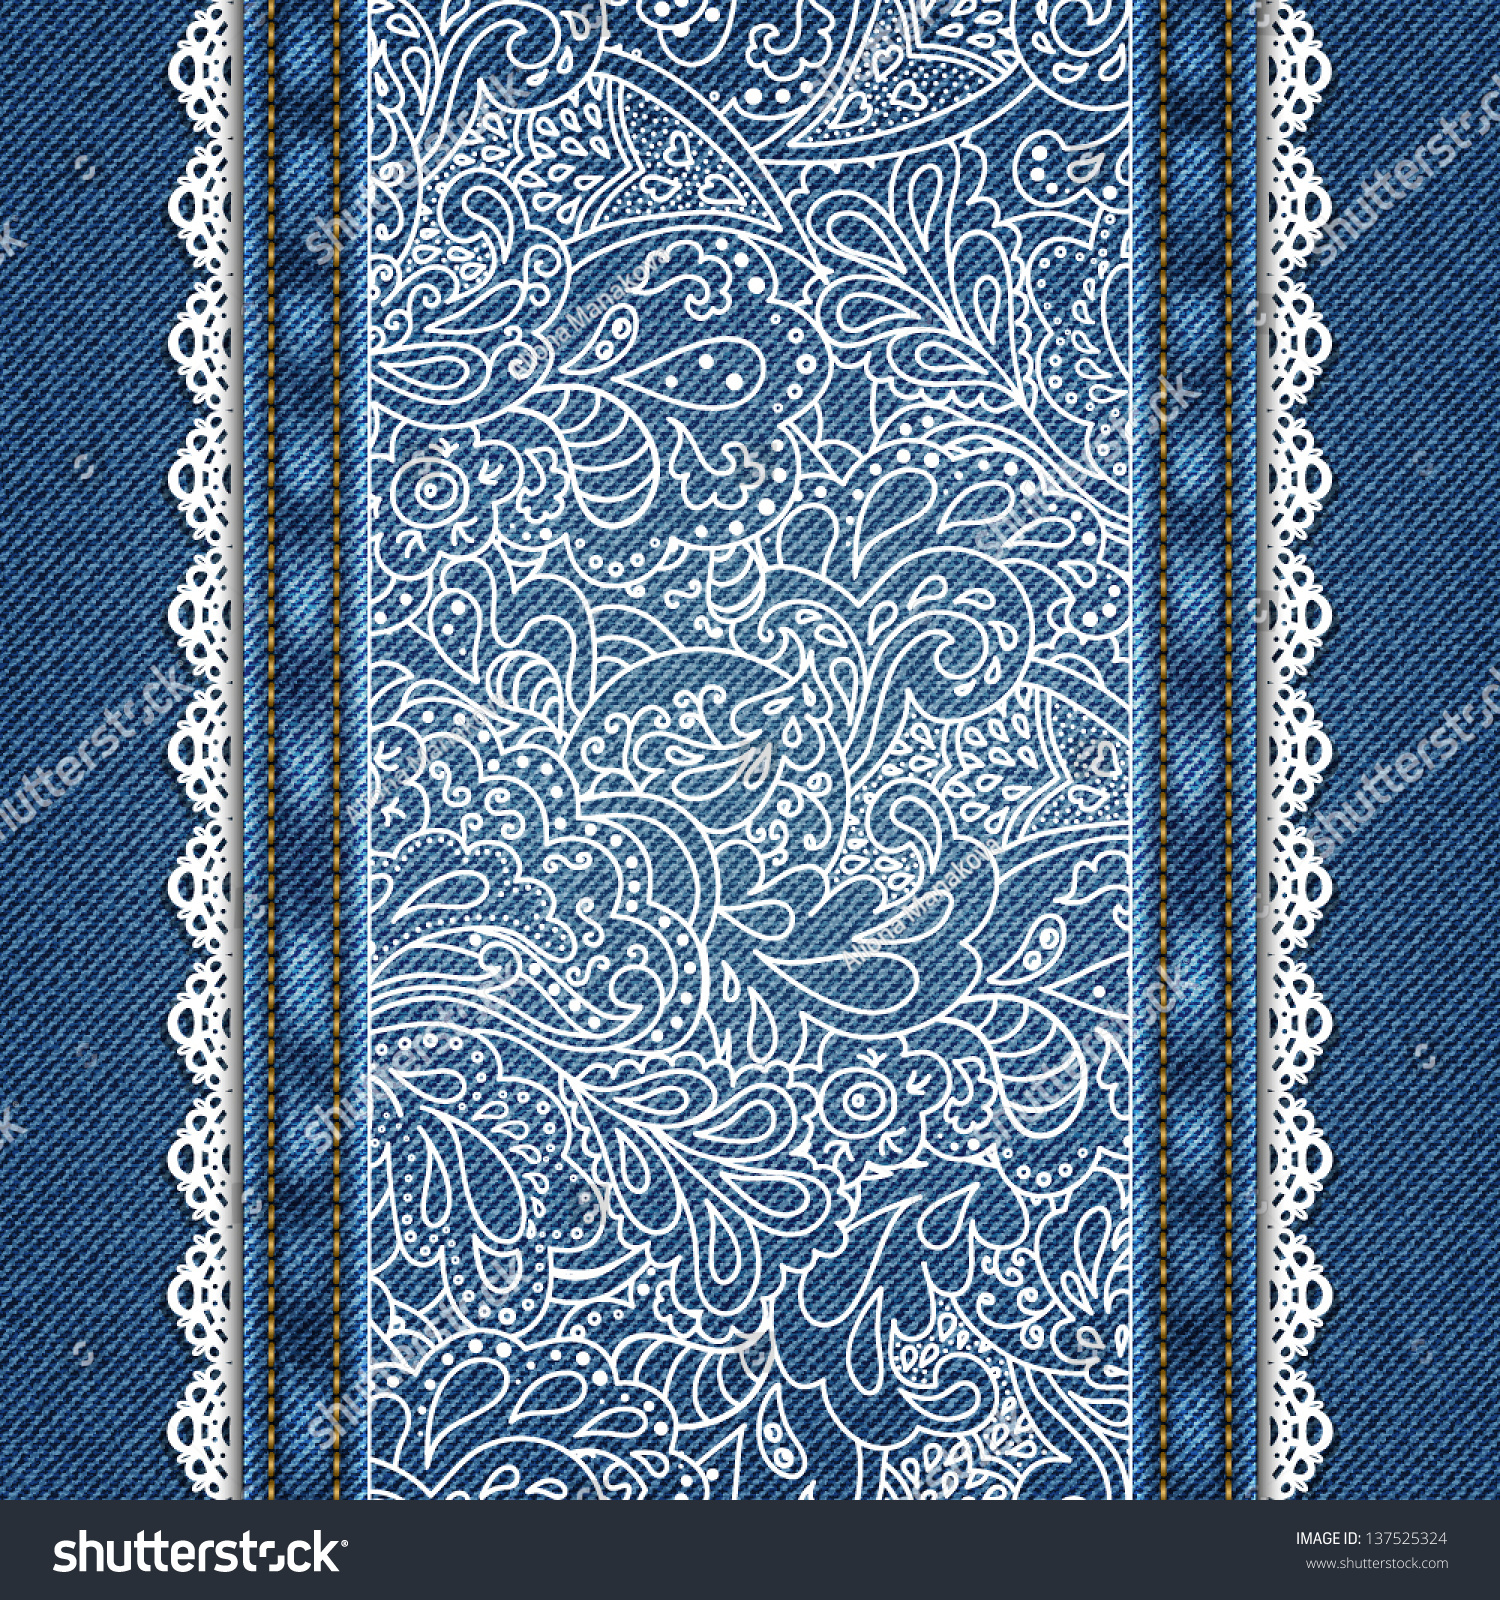 Denim Background Lace Ornate Floral Pattern Stock Vector 137525324 ...